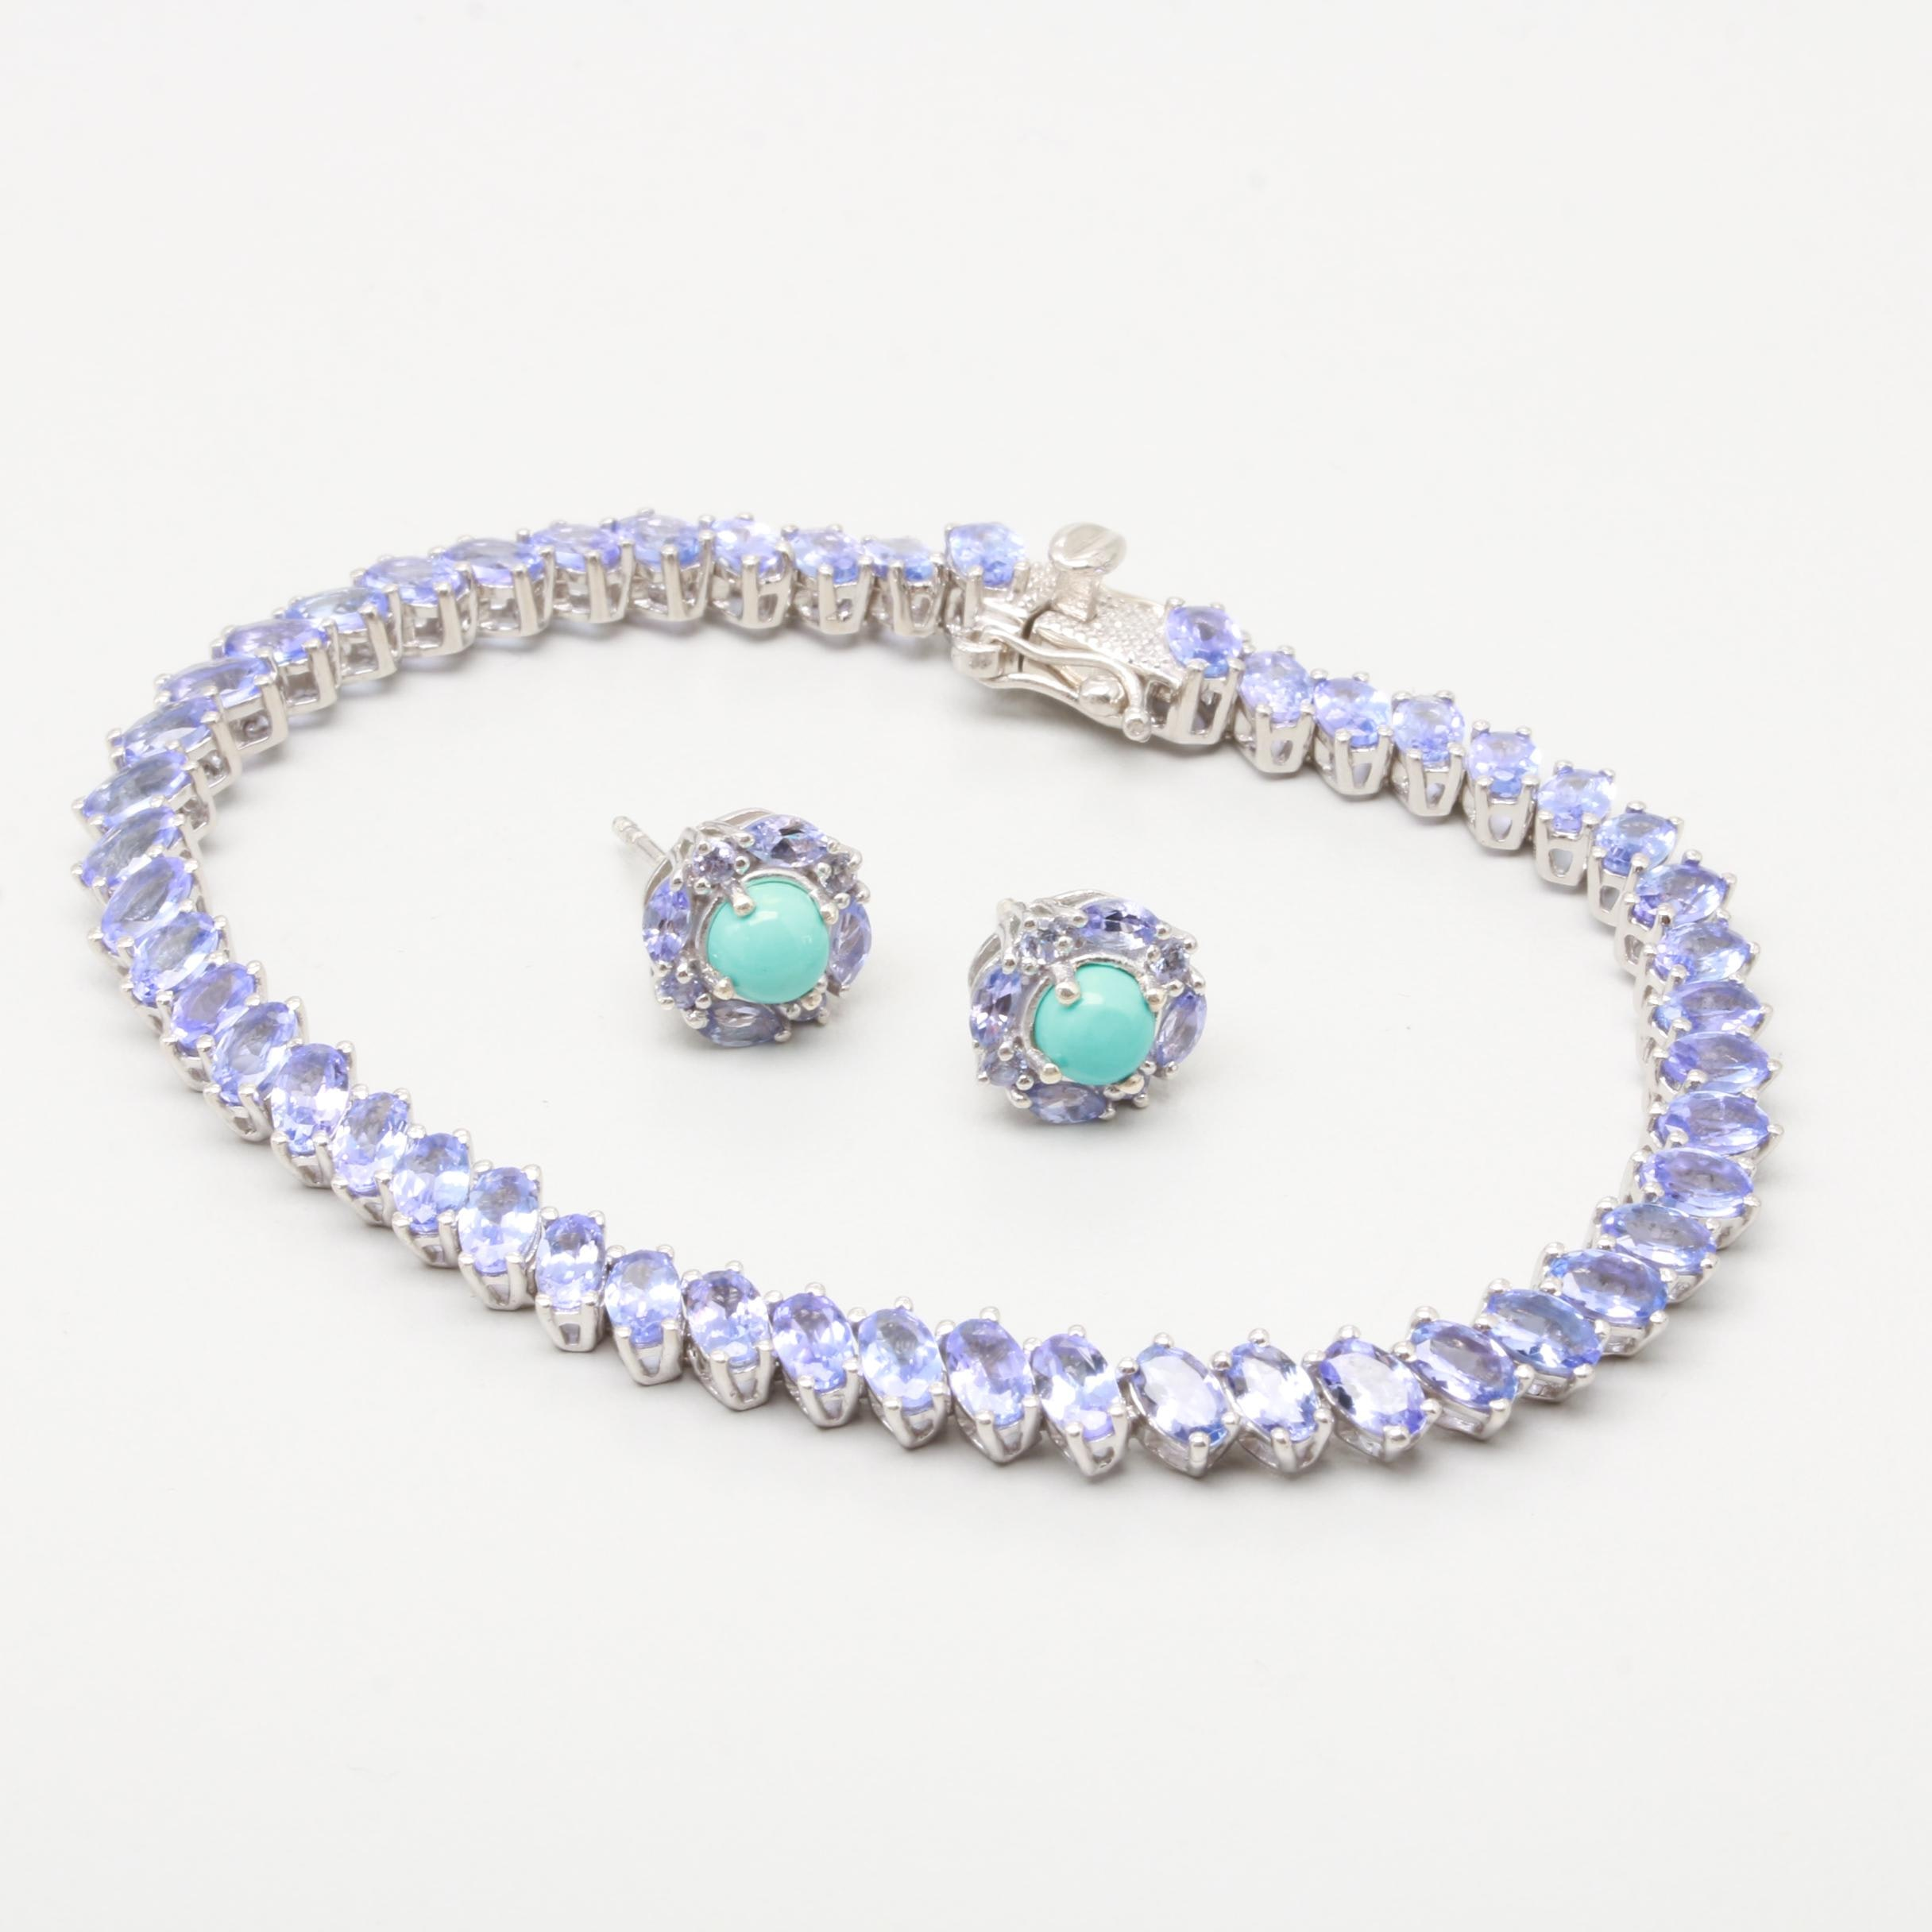 Sterling Silver Bracelet and Earrings with Tanzanite and Turquoise